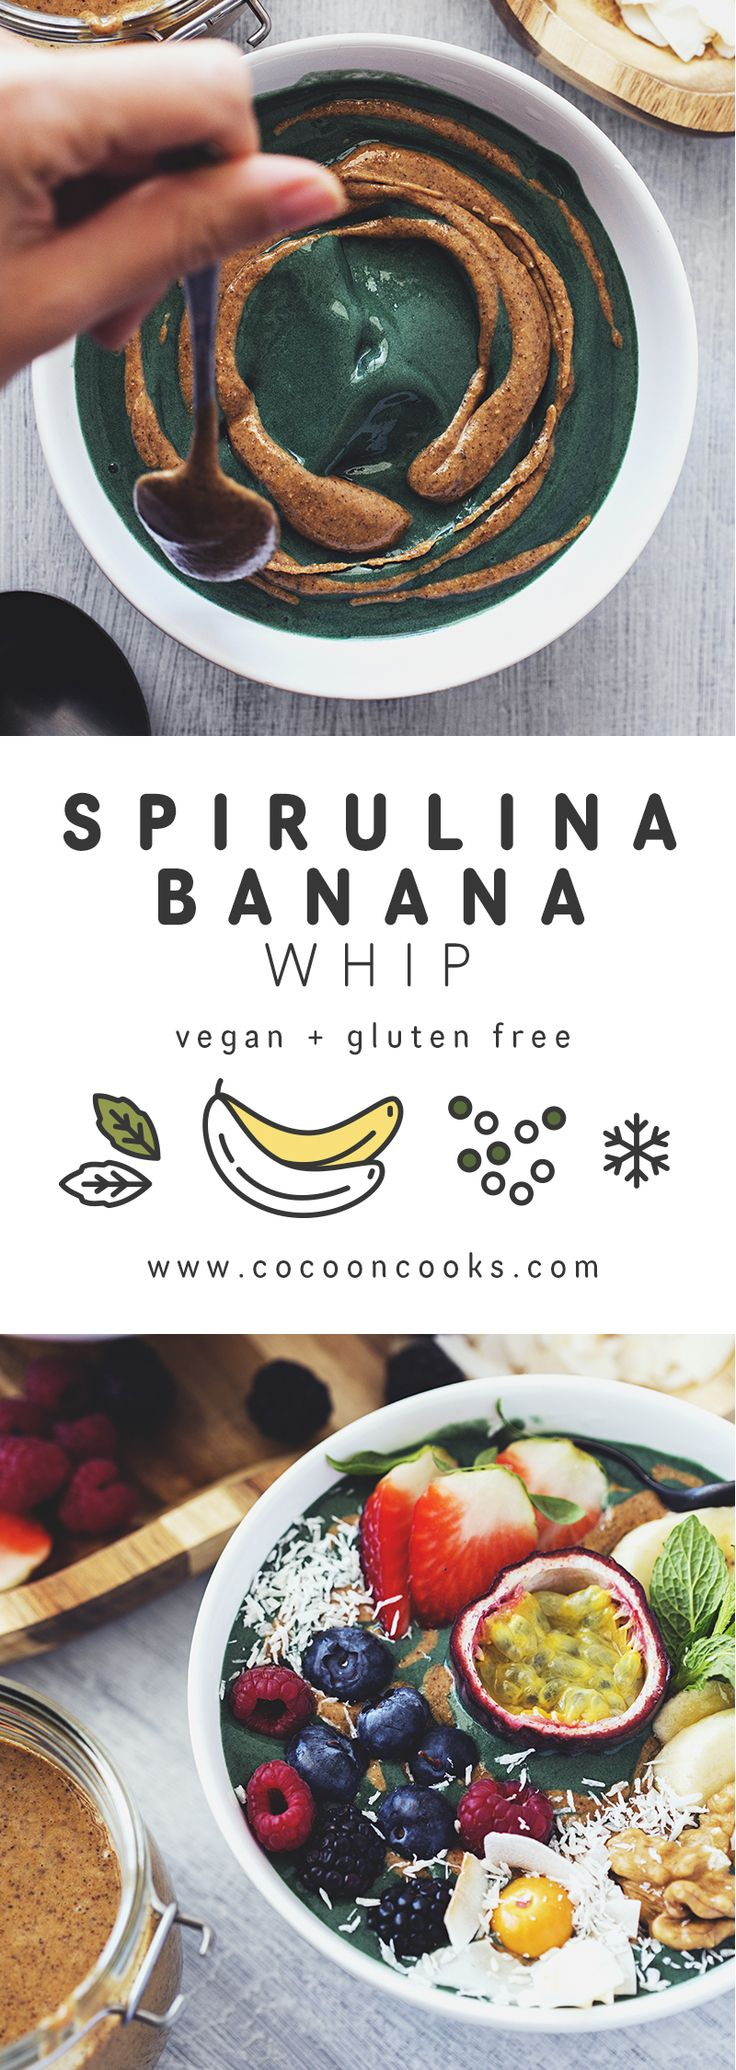 Banana Spirulina Whip, a Simple and Healthy Breakfast. #vegan #highcarb #lowfat…